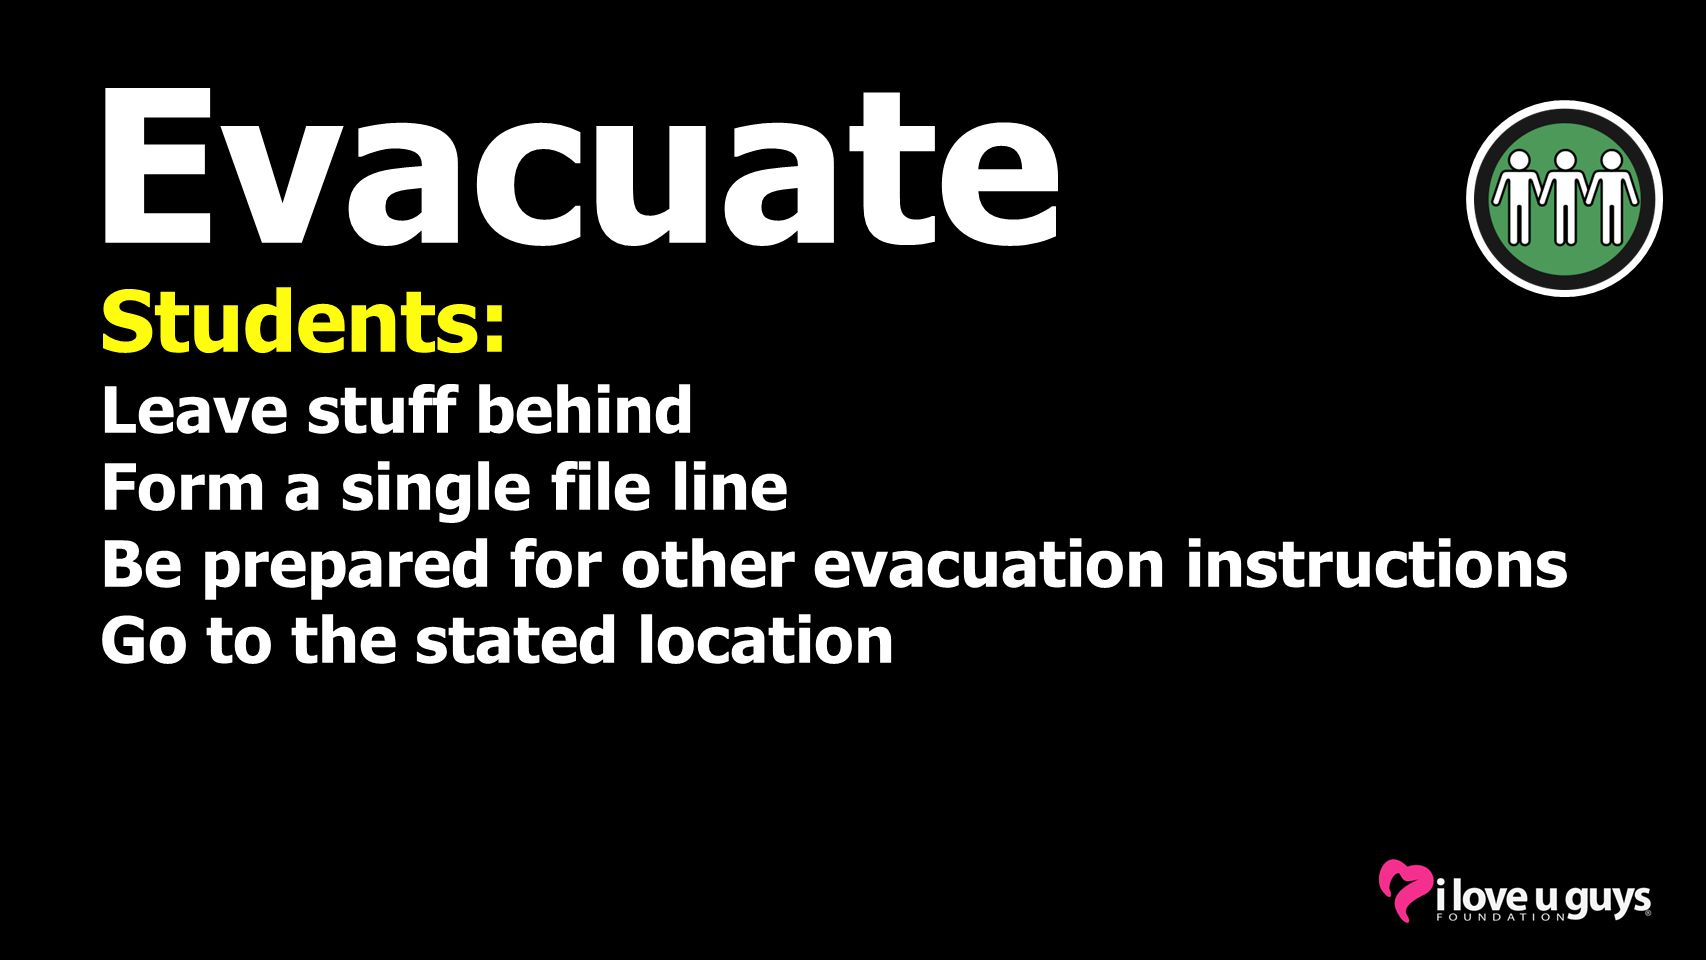 Evacuate Students: Leave stuff behind Form a single file line Be prepared for other evacuation instructions Go to the stated location